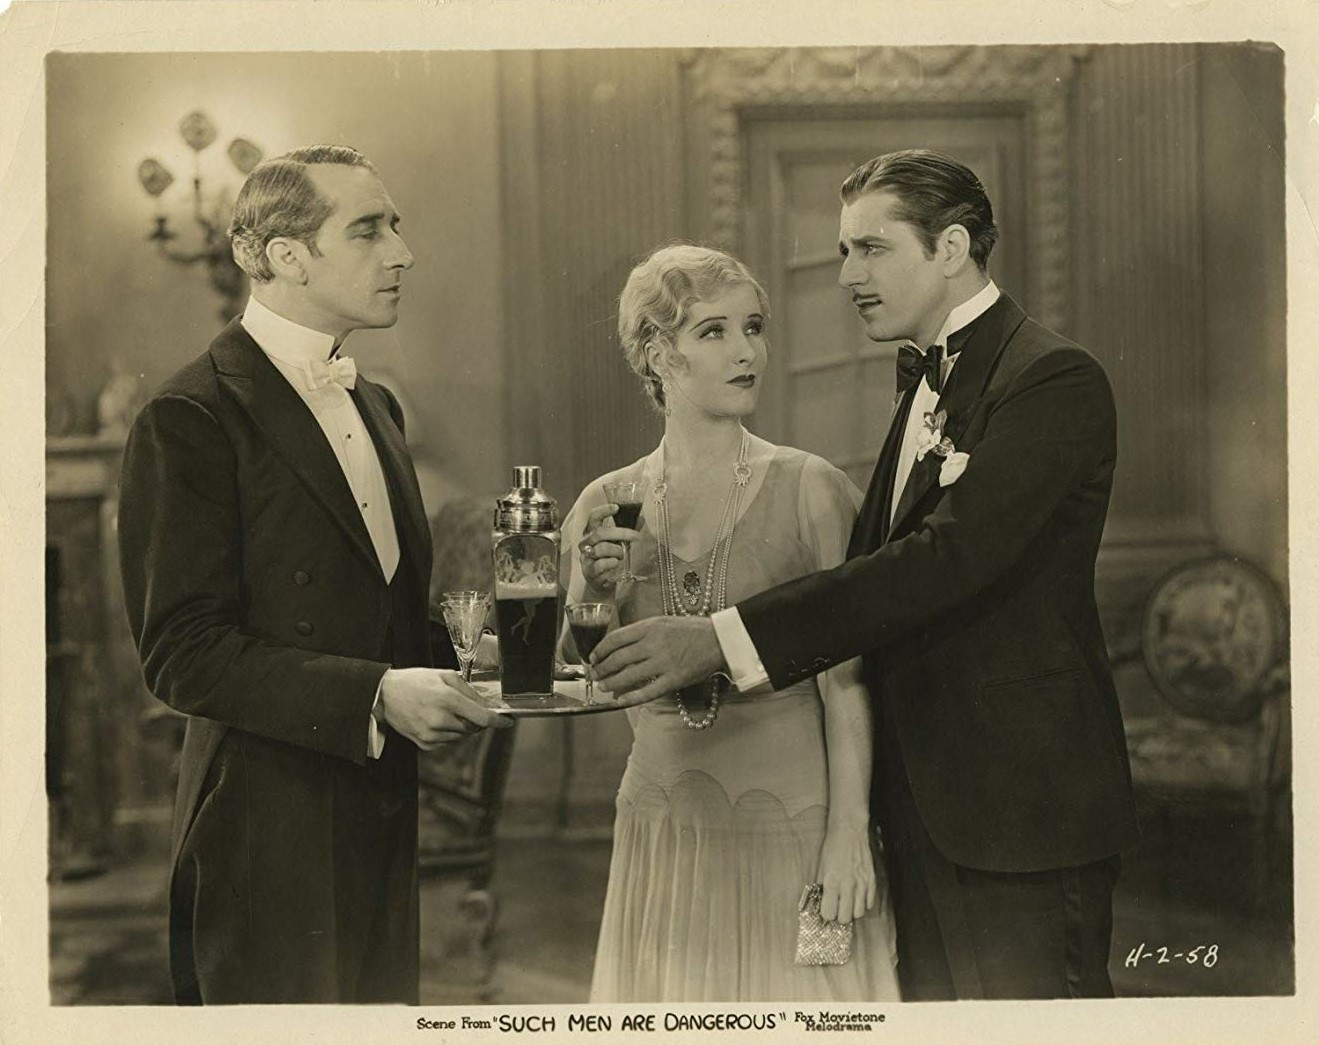 Warner Baxter and Catherine Dale Owen in Such Men Are Dangerous (1930)